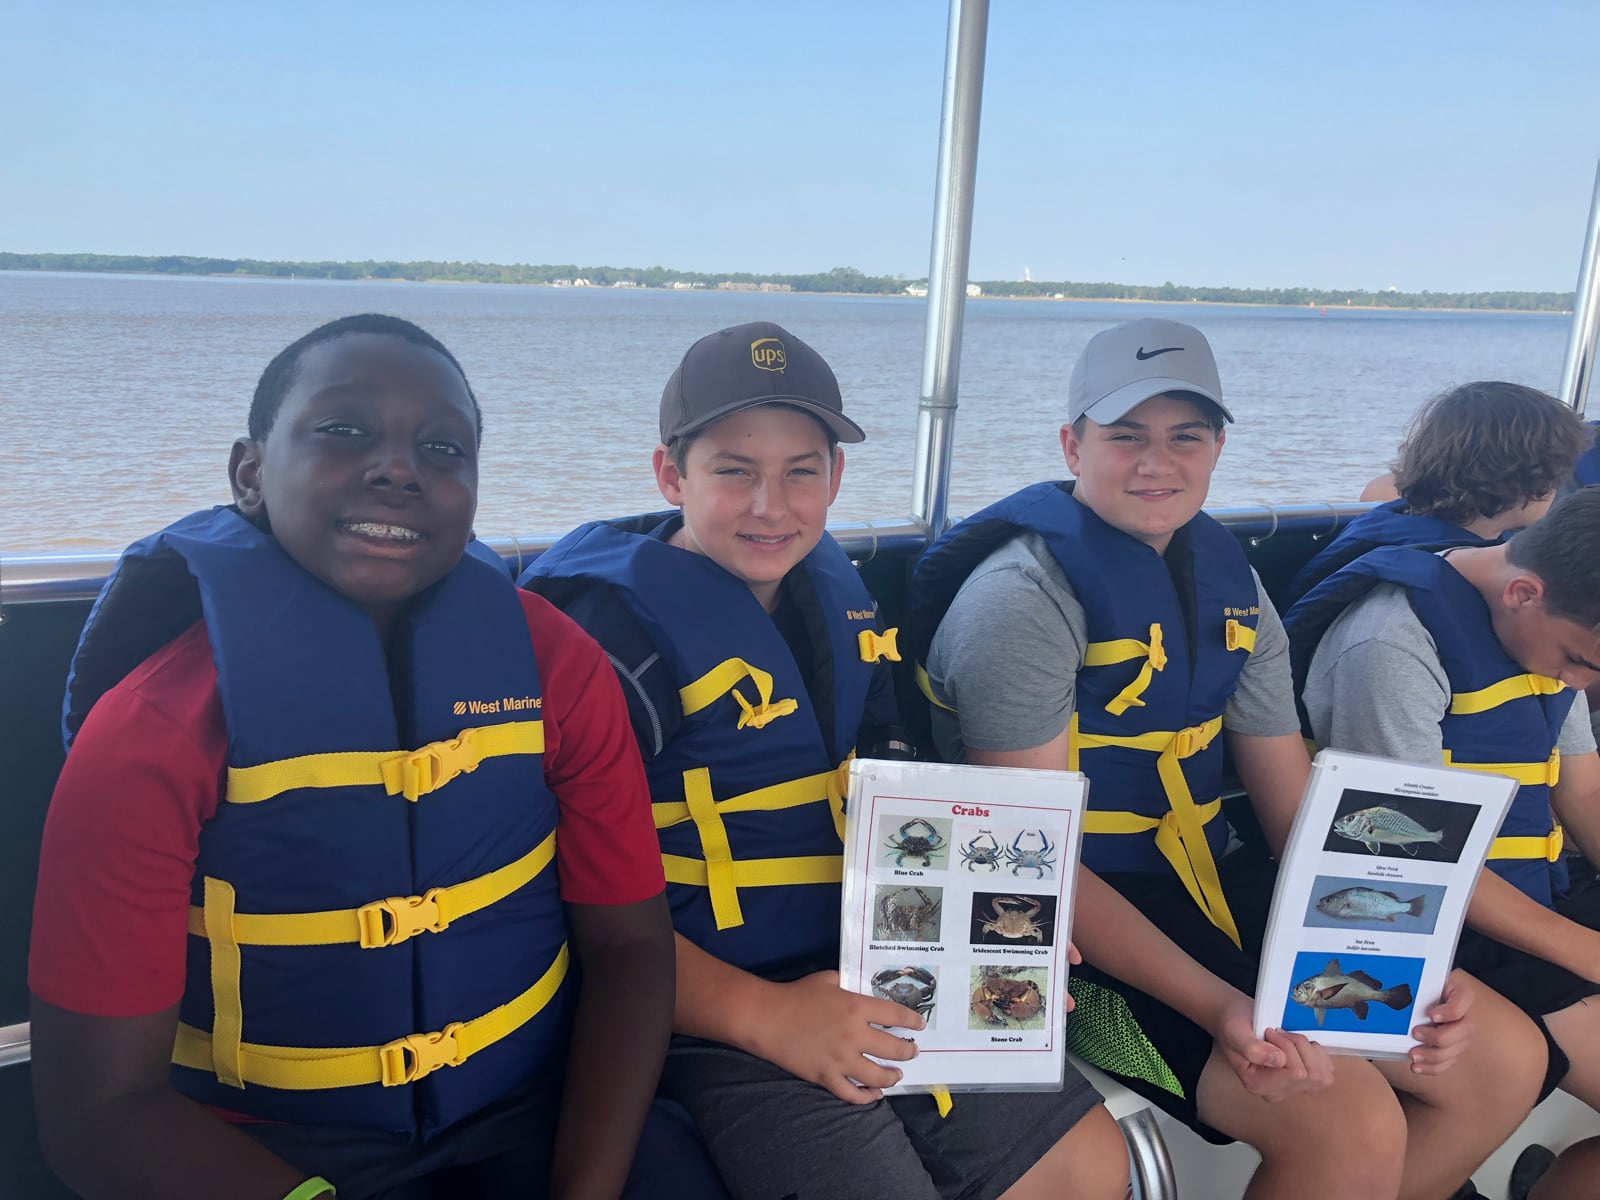 Middle school boys exploring Winyah Bay by boat